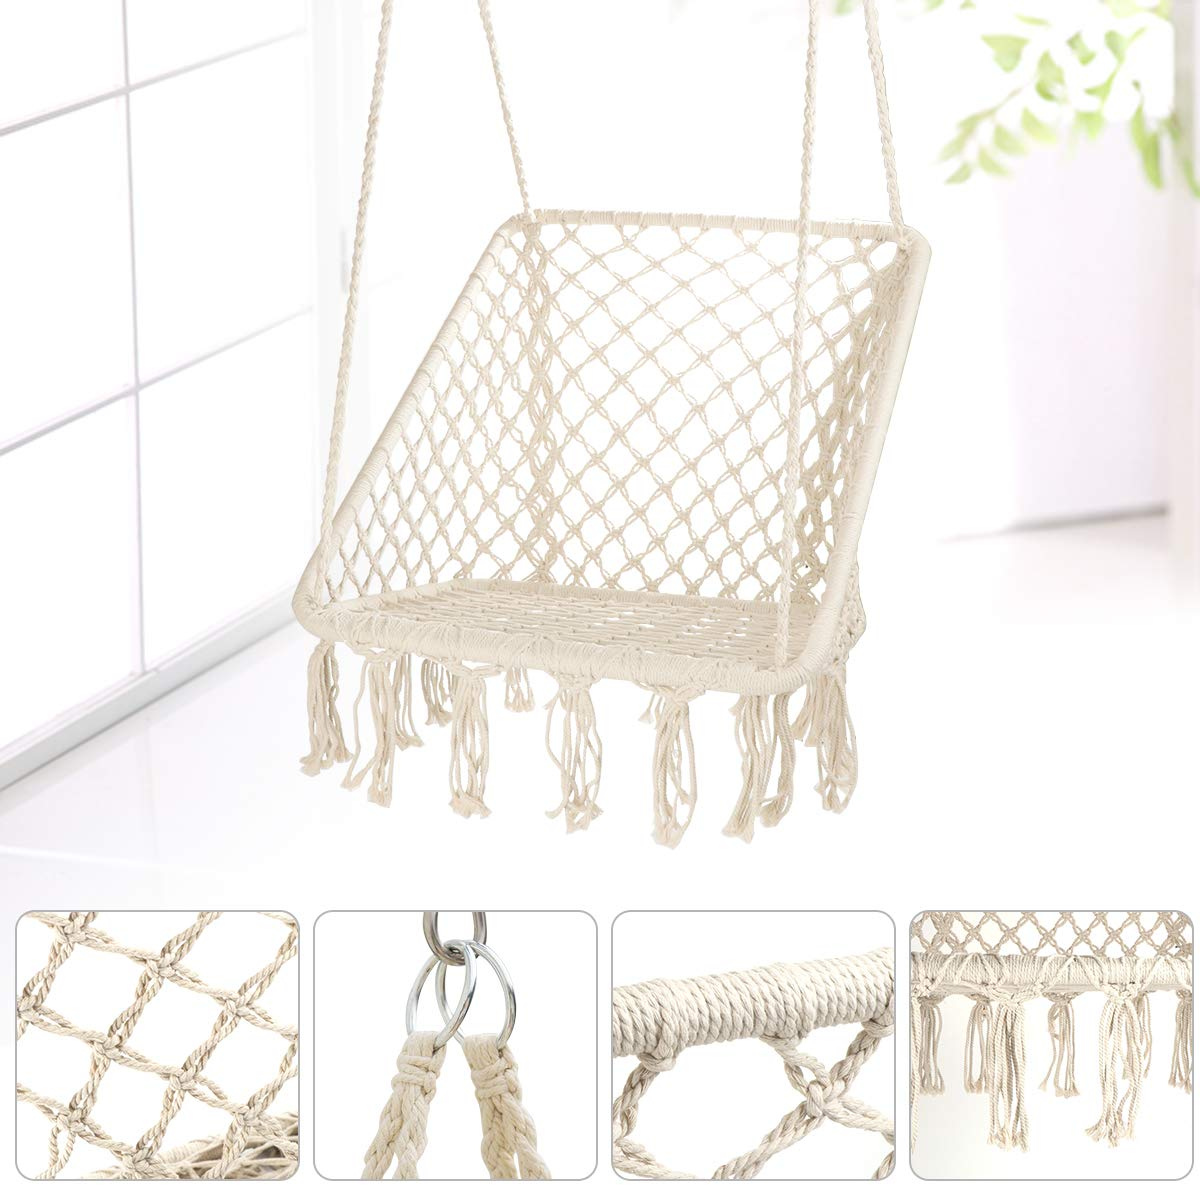 Square Cotton Rope Swing Hanging Chair